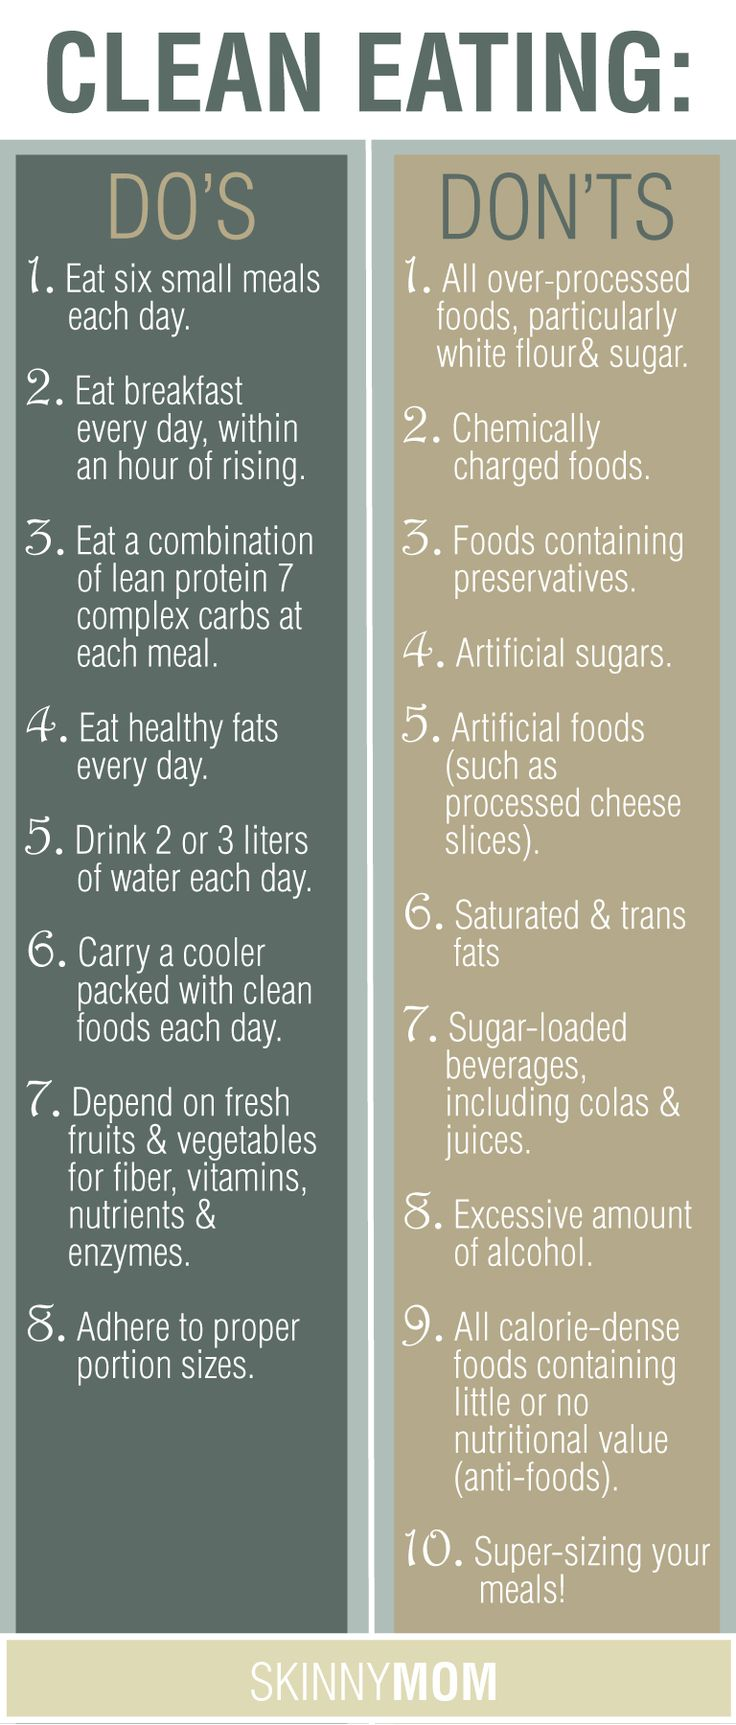 Interested in CLEAN EATING? This chart is helpful!